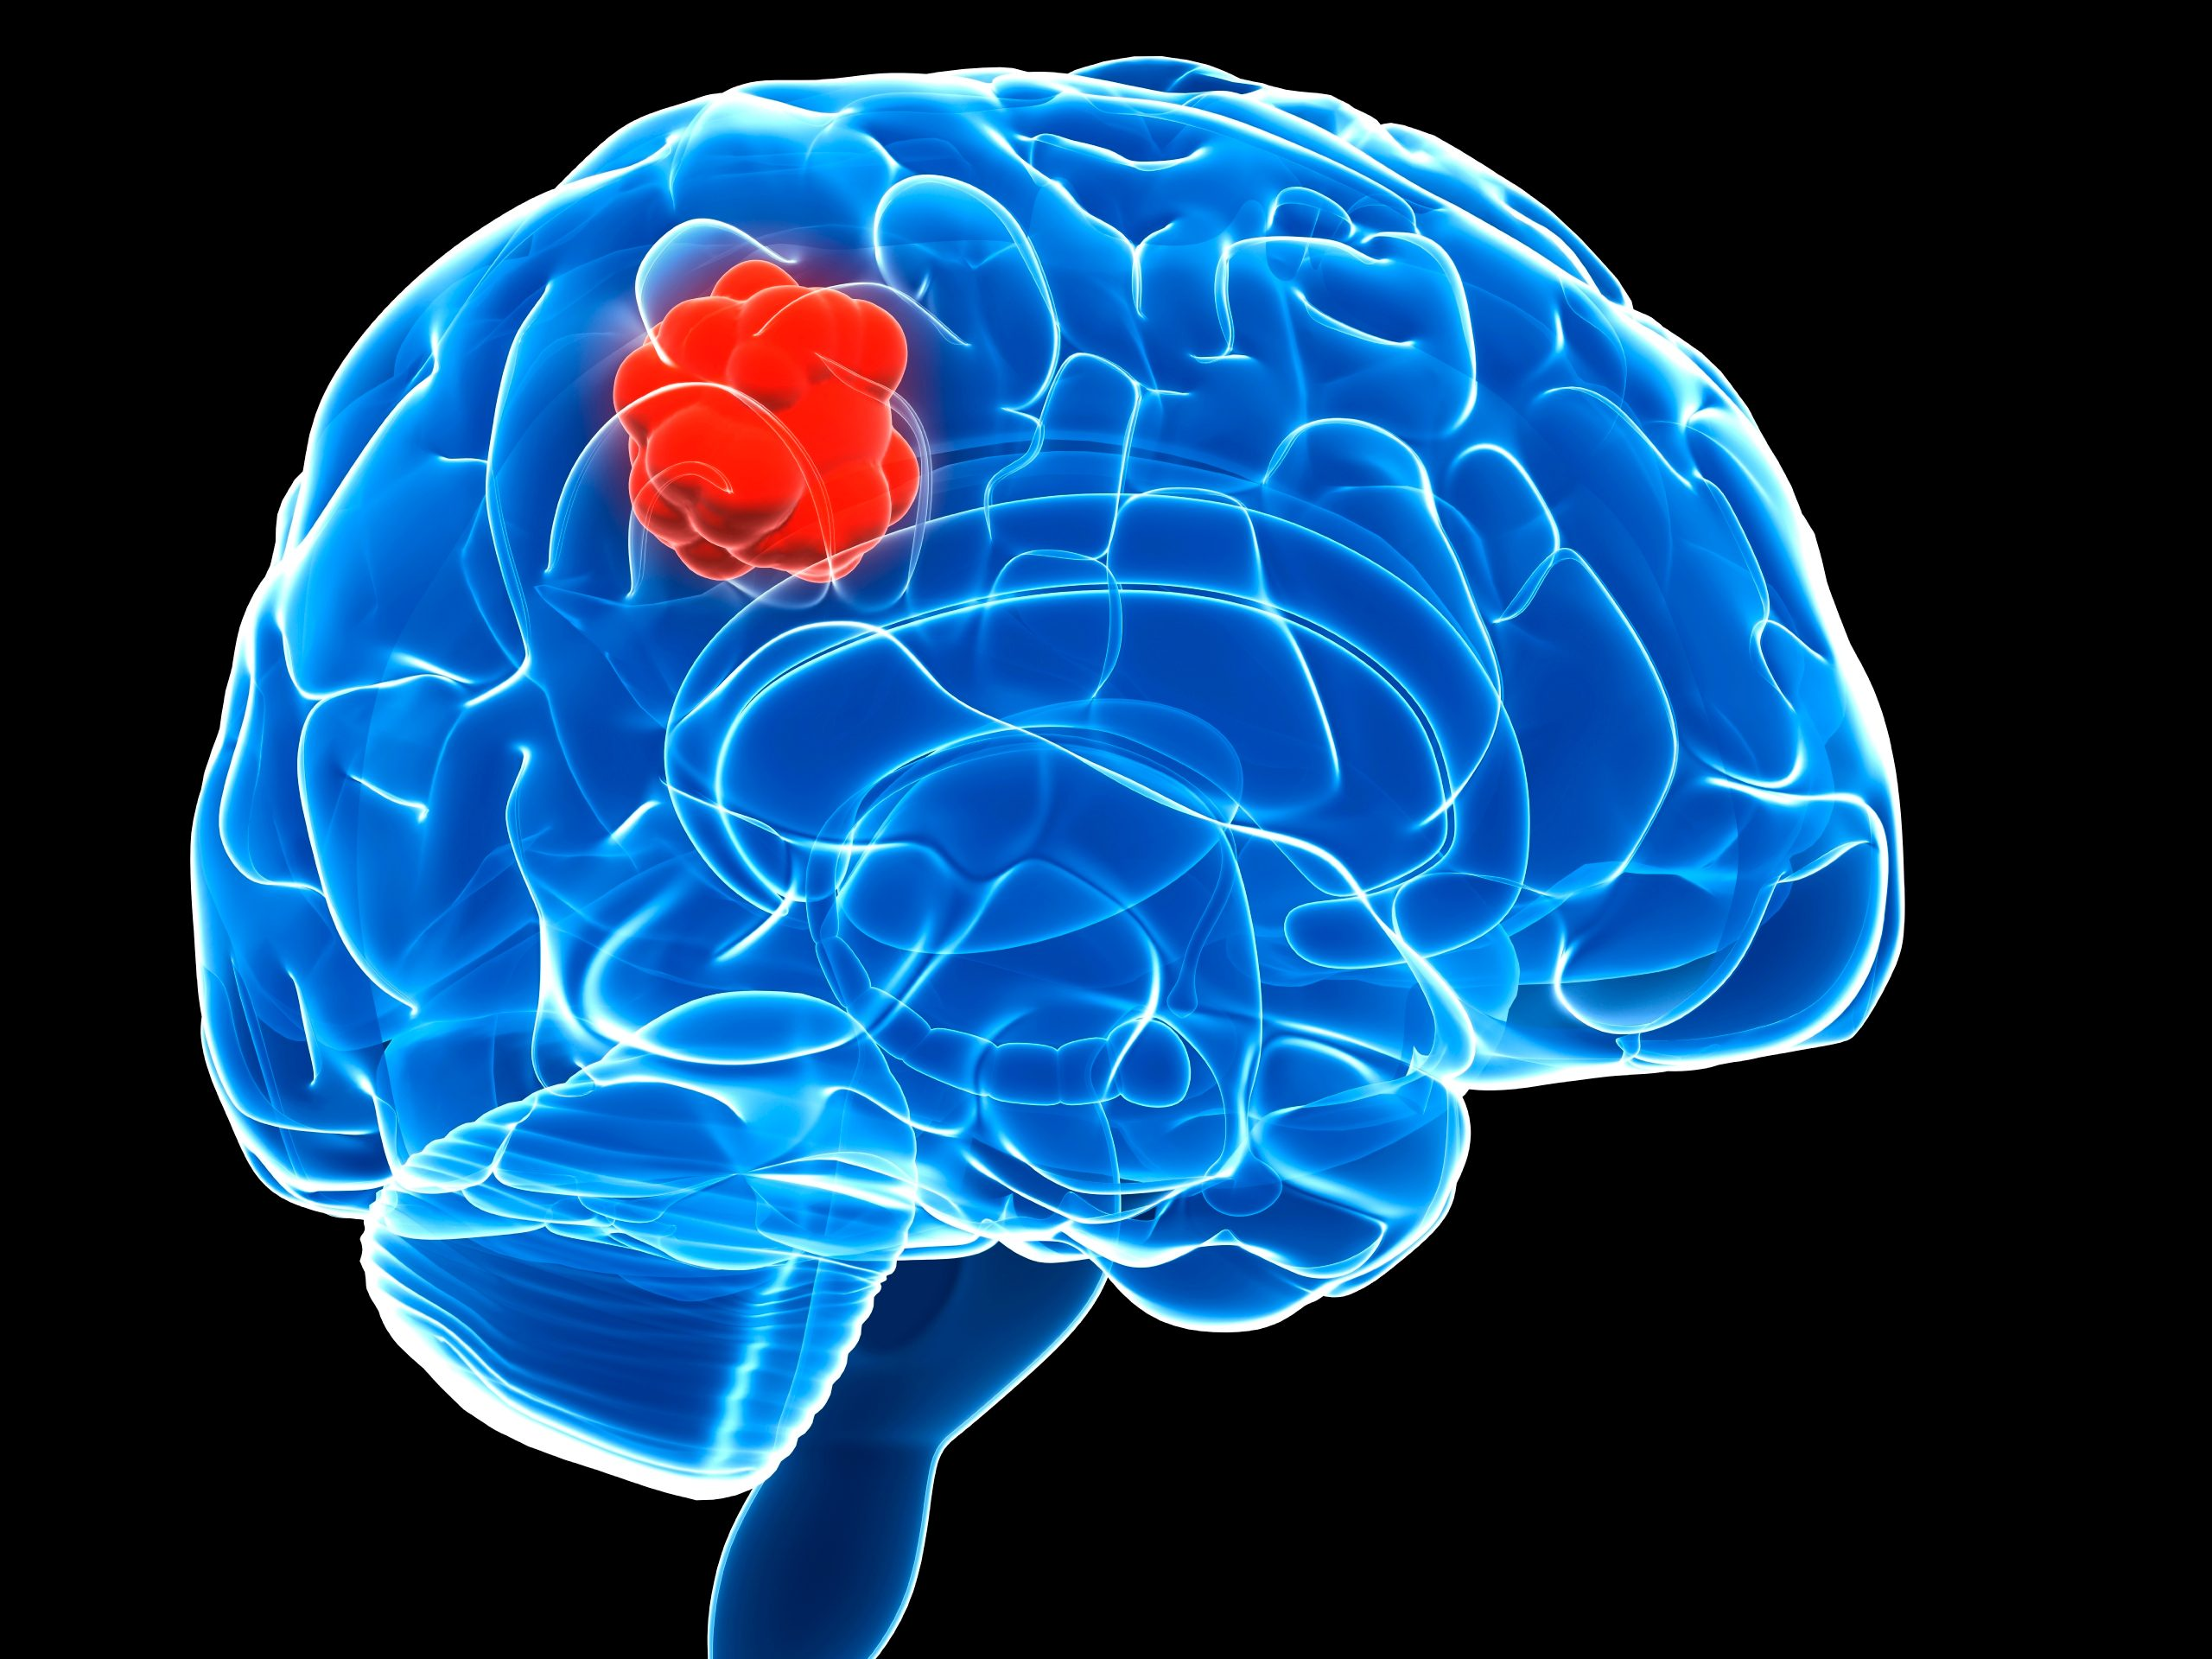 Complementary Therapies for Brain Tumors